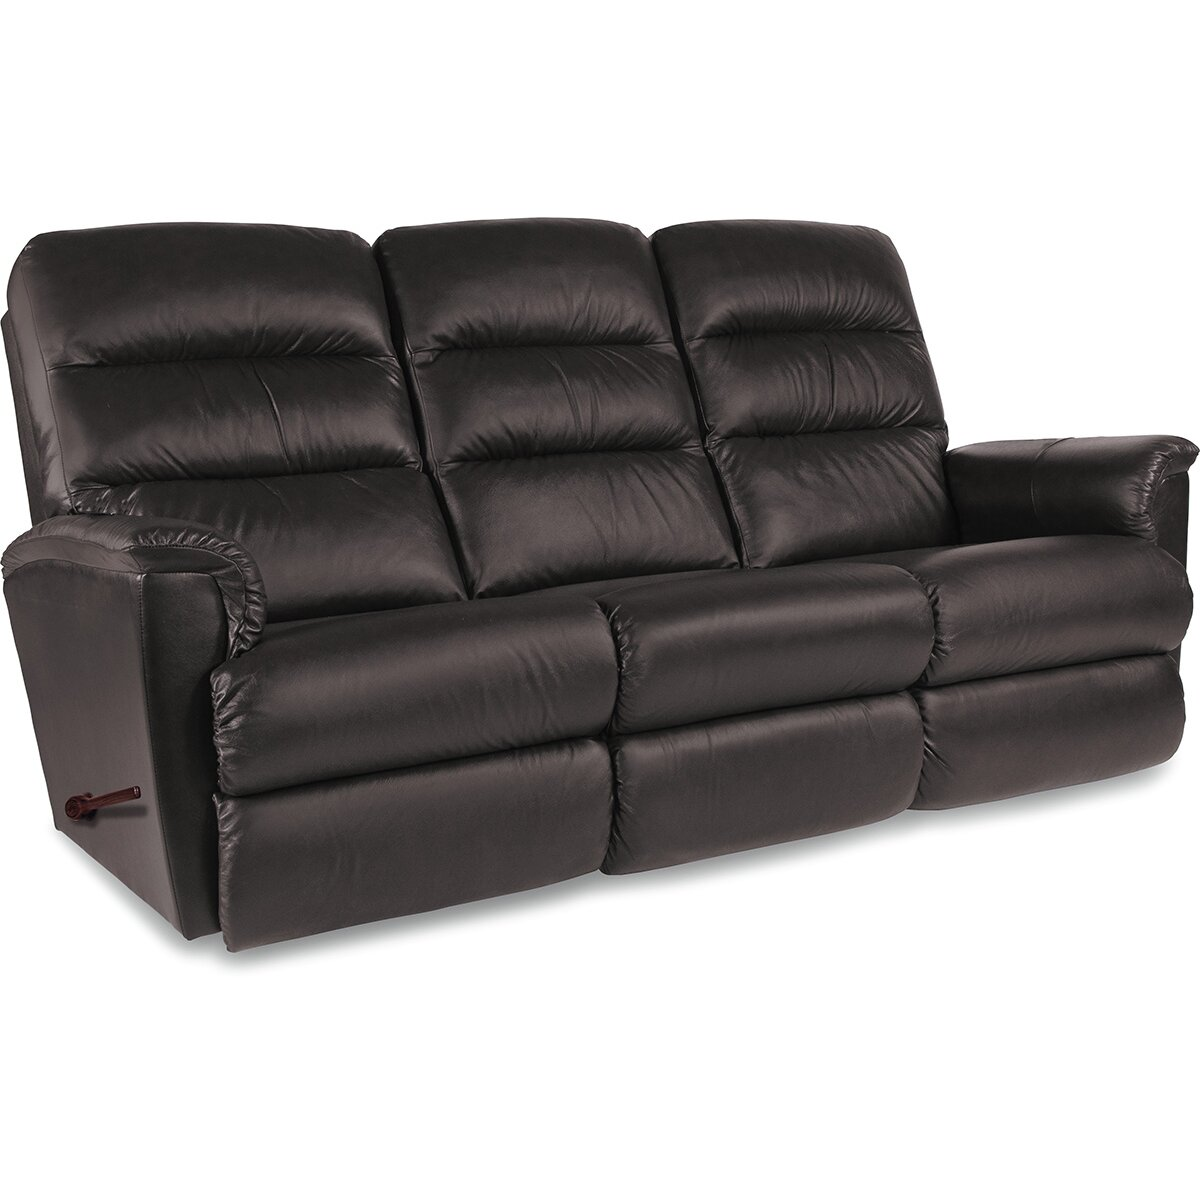 Dfs Supreme Leather Sofa Reviews Sofa Review